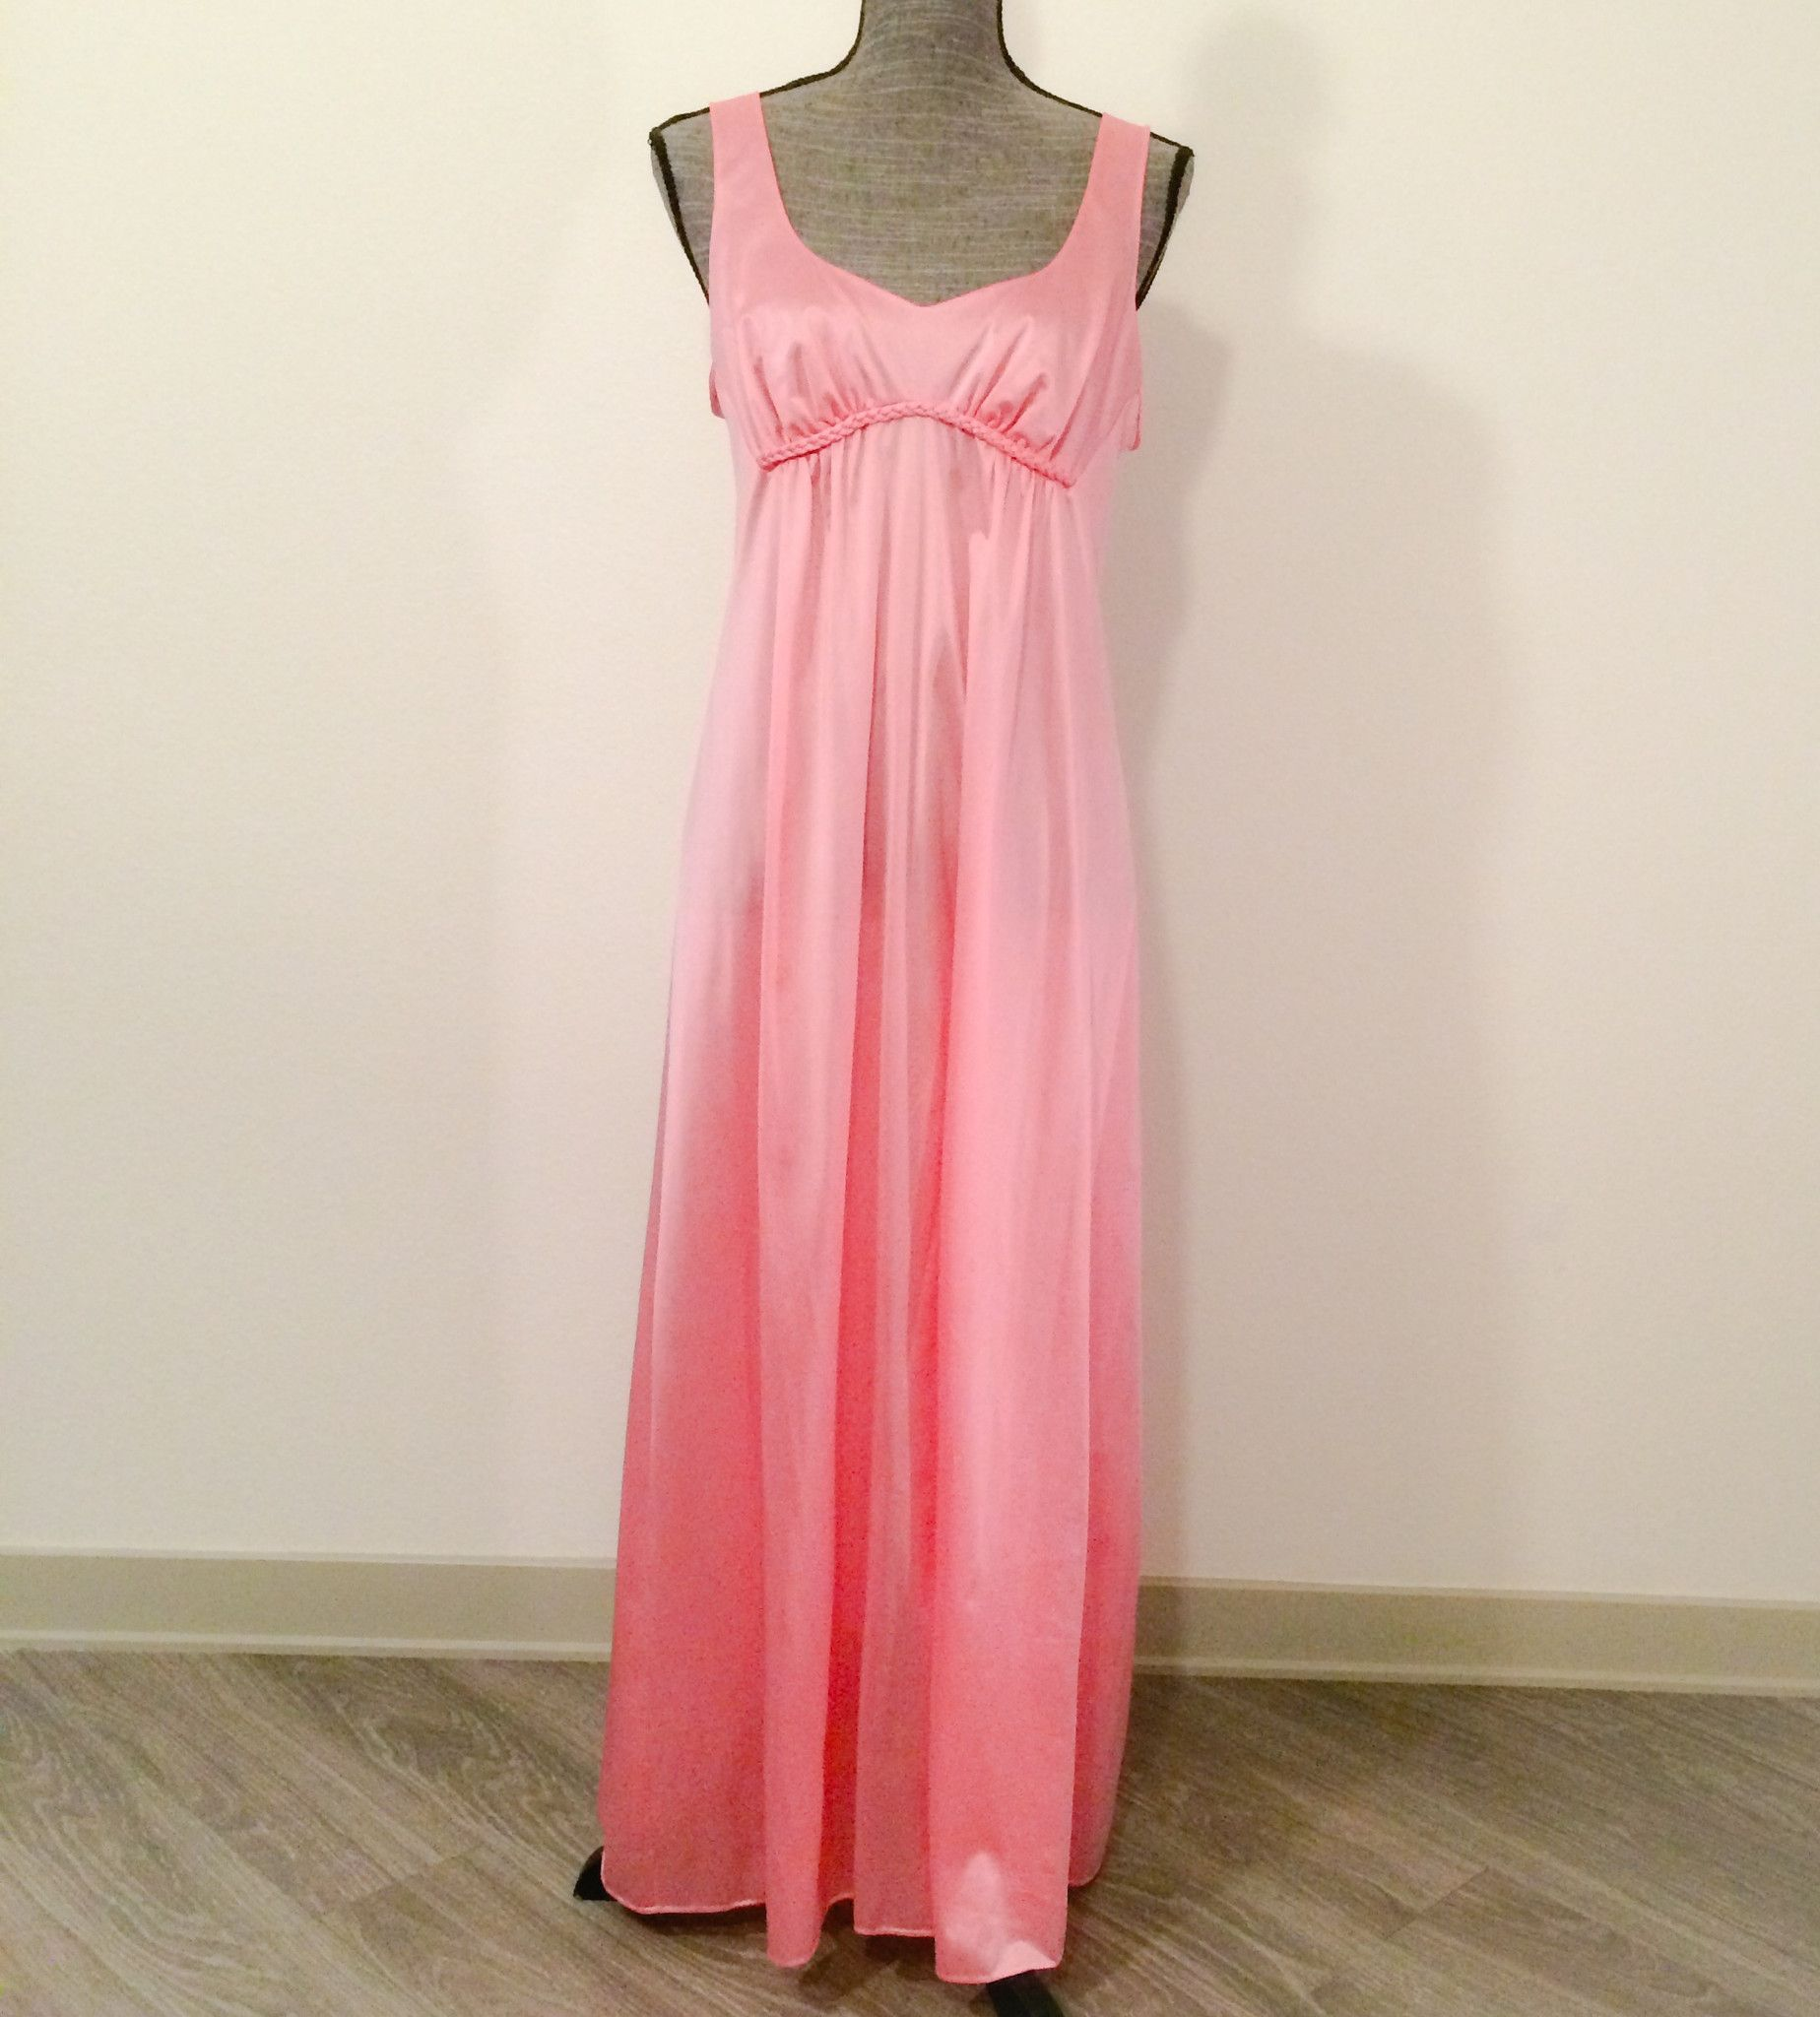 Vanity Fair Vintage Nightgown | clothes i want to wear | Pinterest